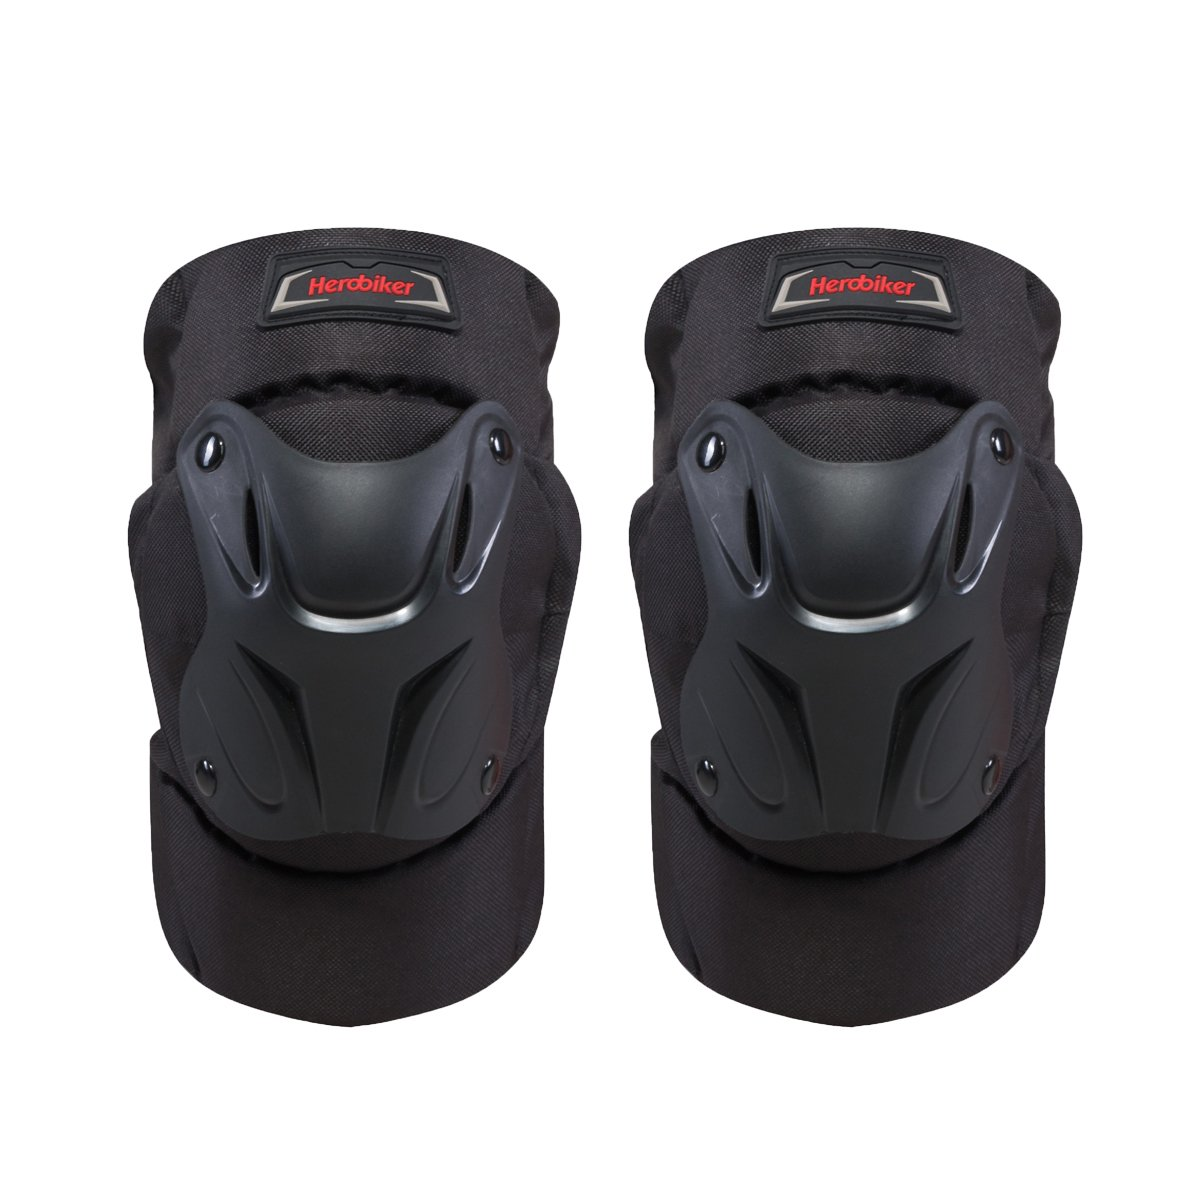 HEROBIKER MK1004 Black Motorcycle Sports Knee Protection Equipment Covered